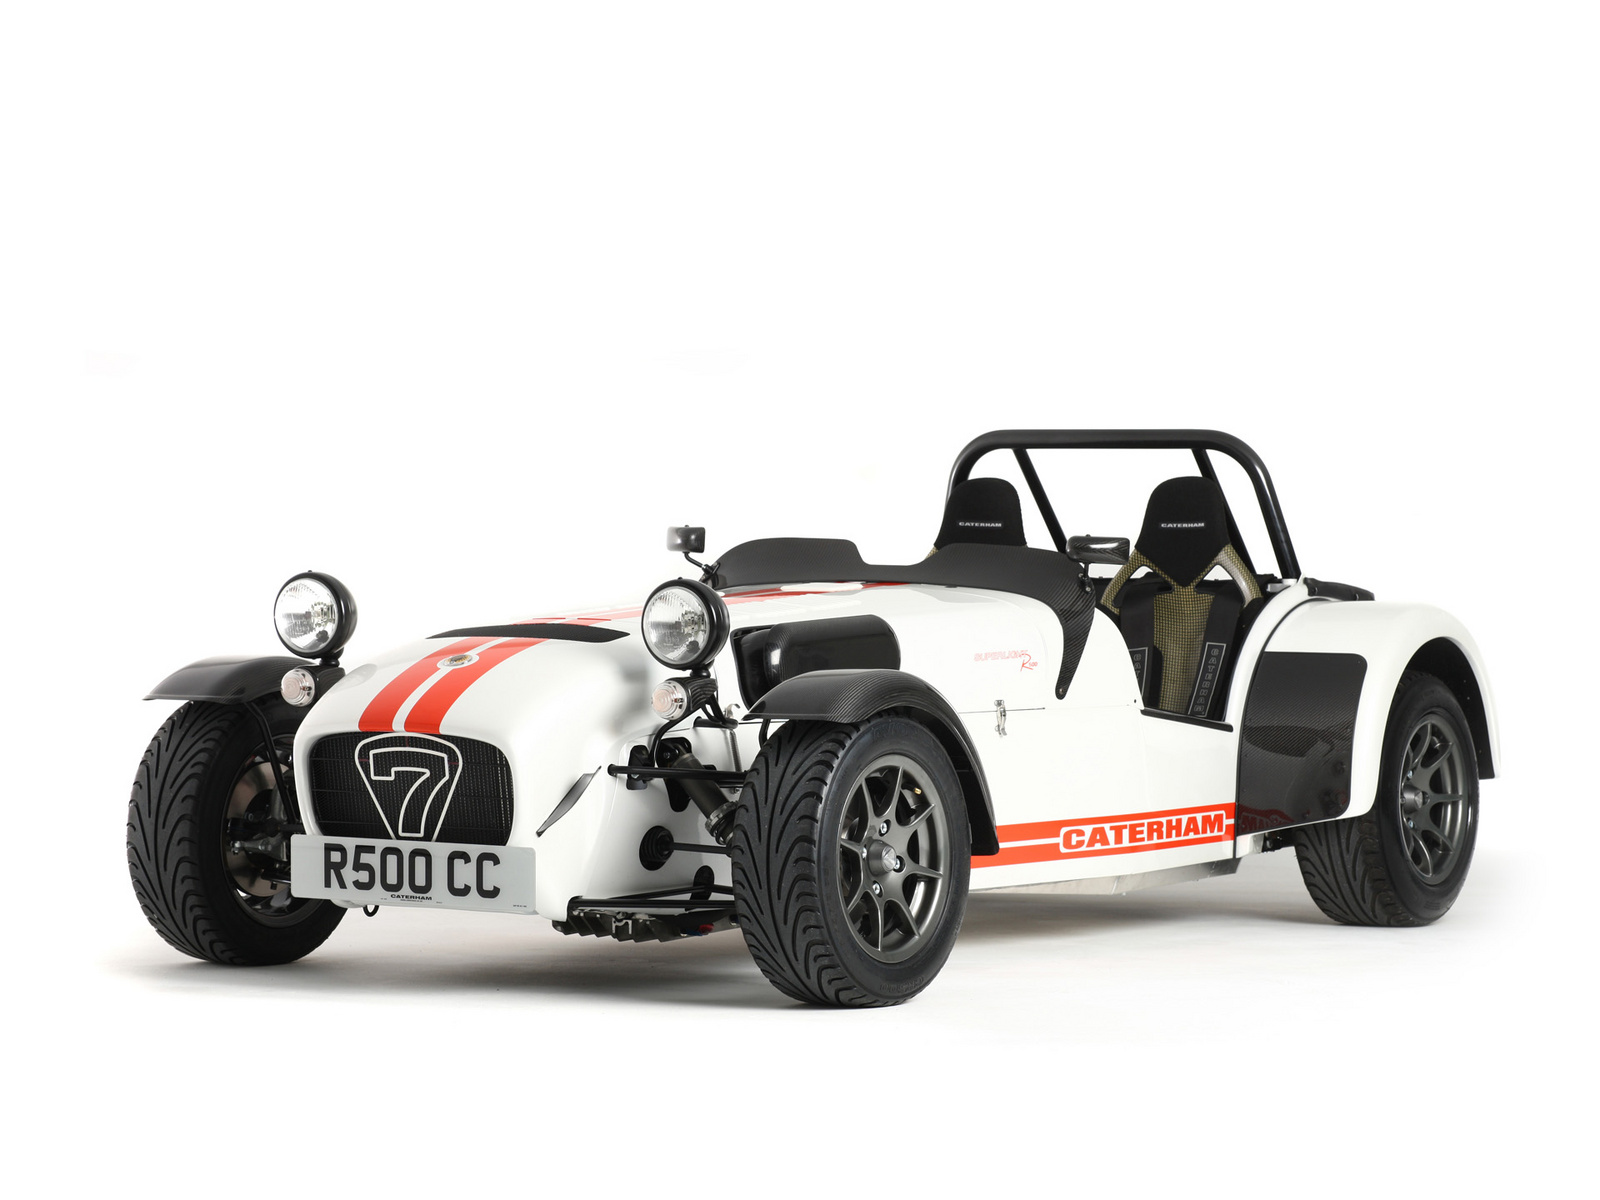 2007 Caterham Seven - Pictures - Caterham Seven Superlight R500 ...